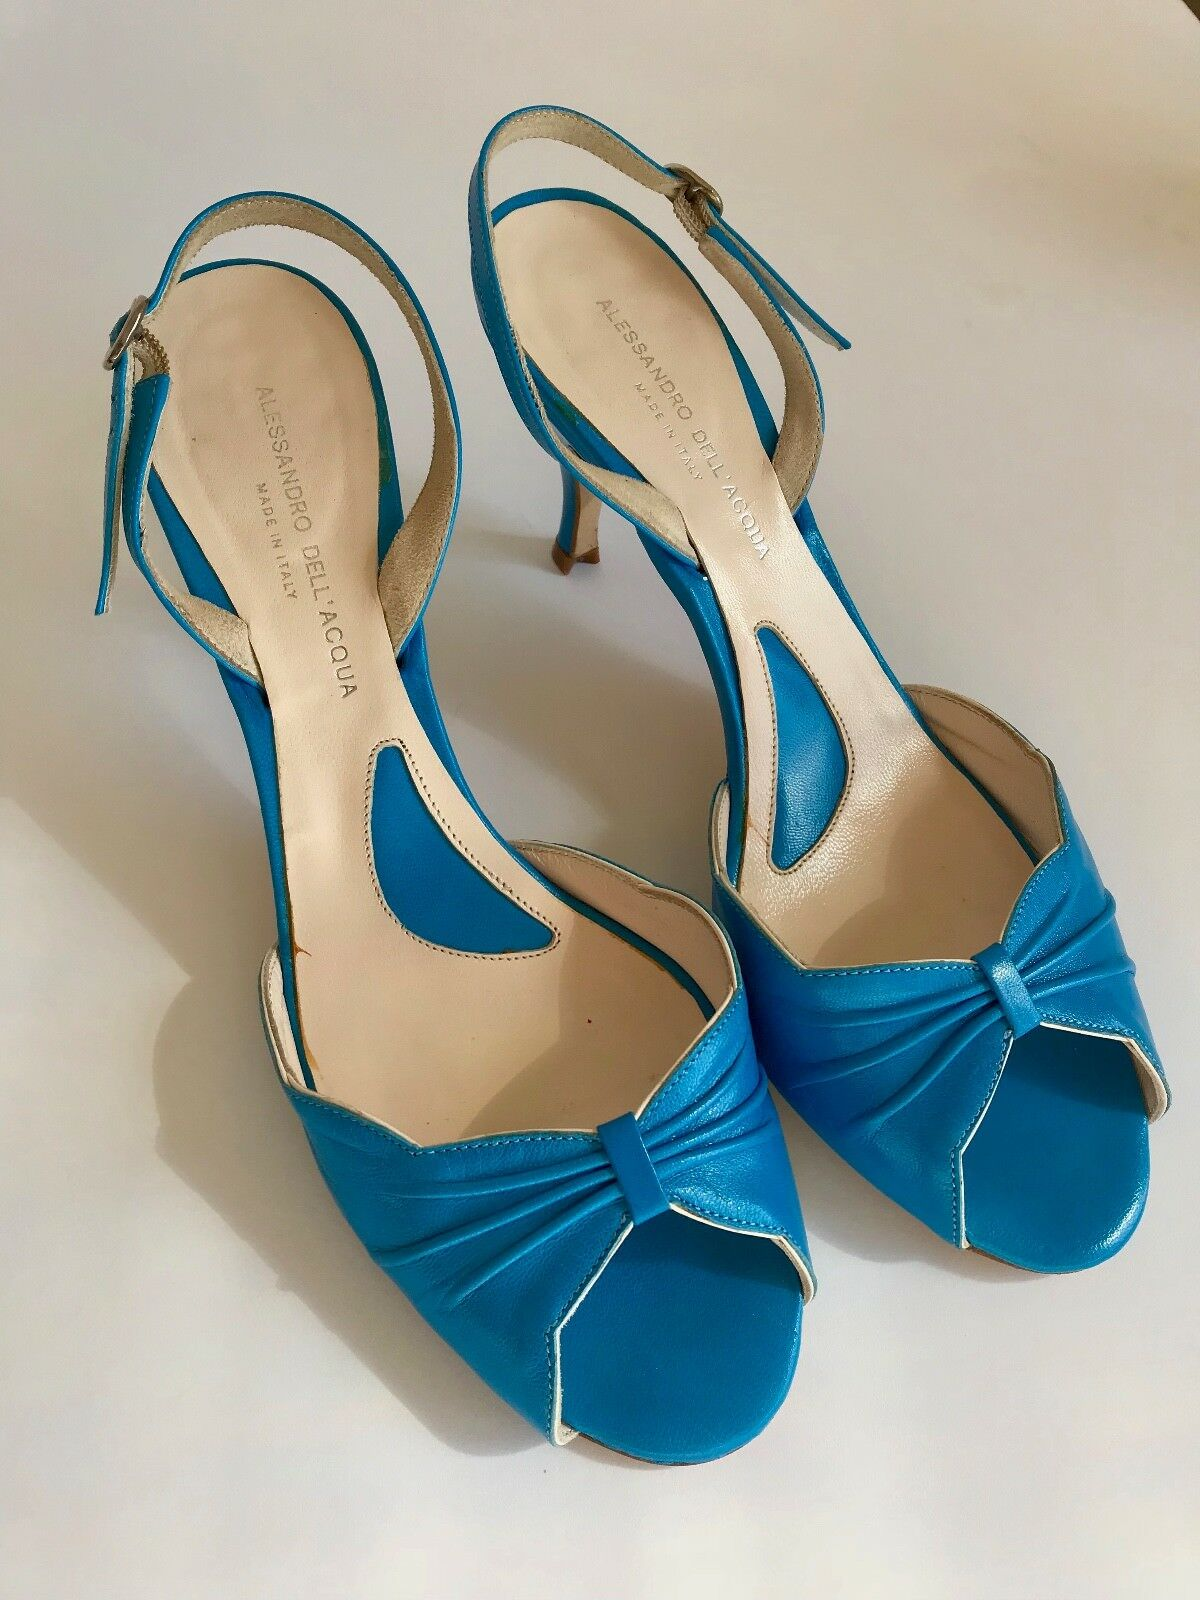 ALESSANDRO DELL ACQUA TURQUOISE Blau SLINGBACK HEELS 37.5 7 7 7 MADE IN ITALY 60c73e